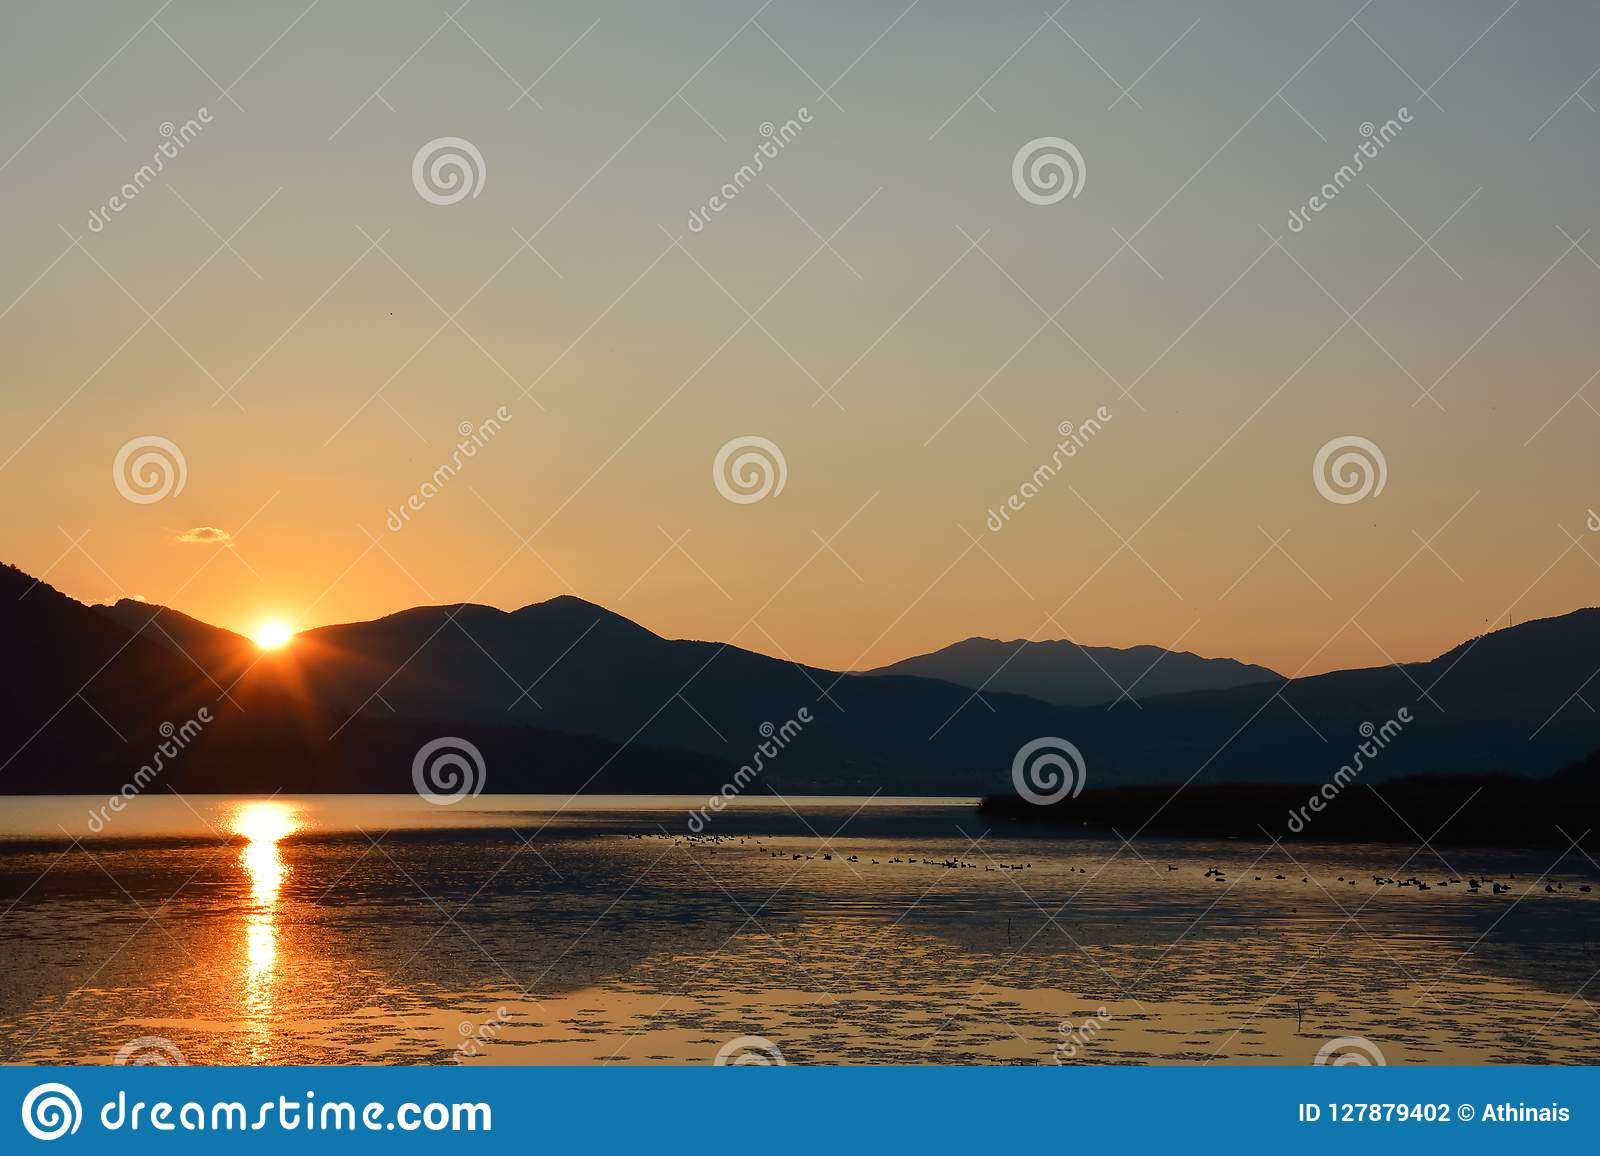 Scenic landscape of mountain ridges and sun rays reflecting in t